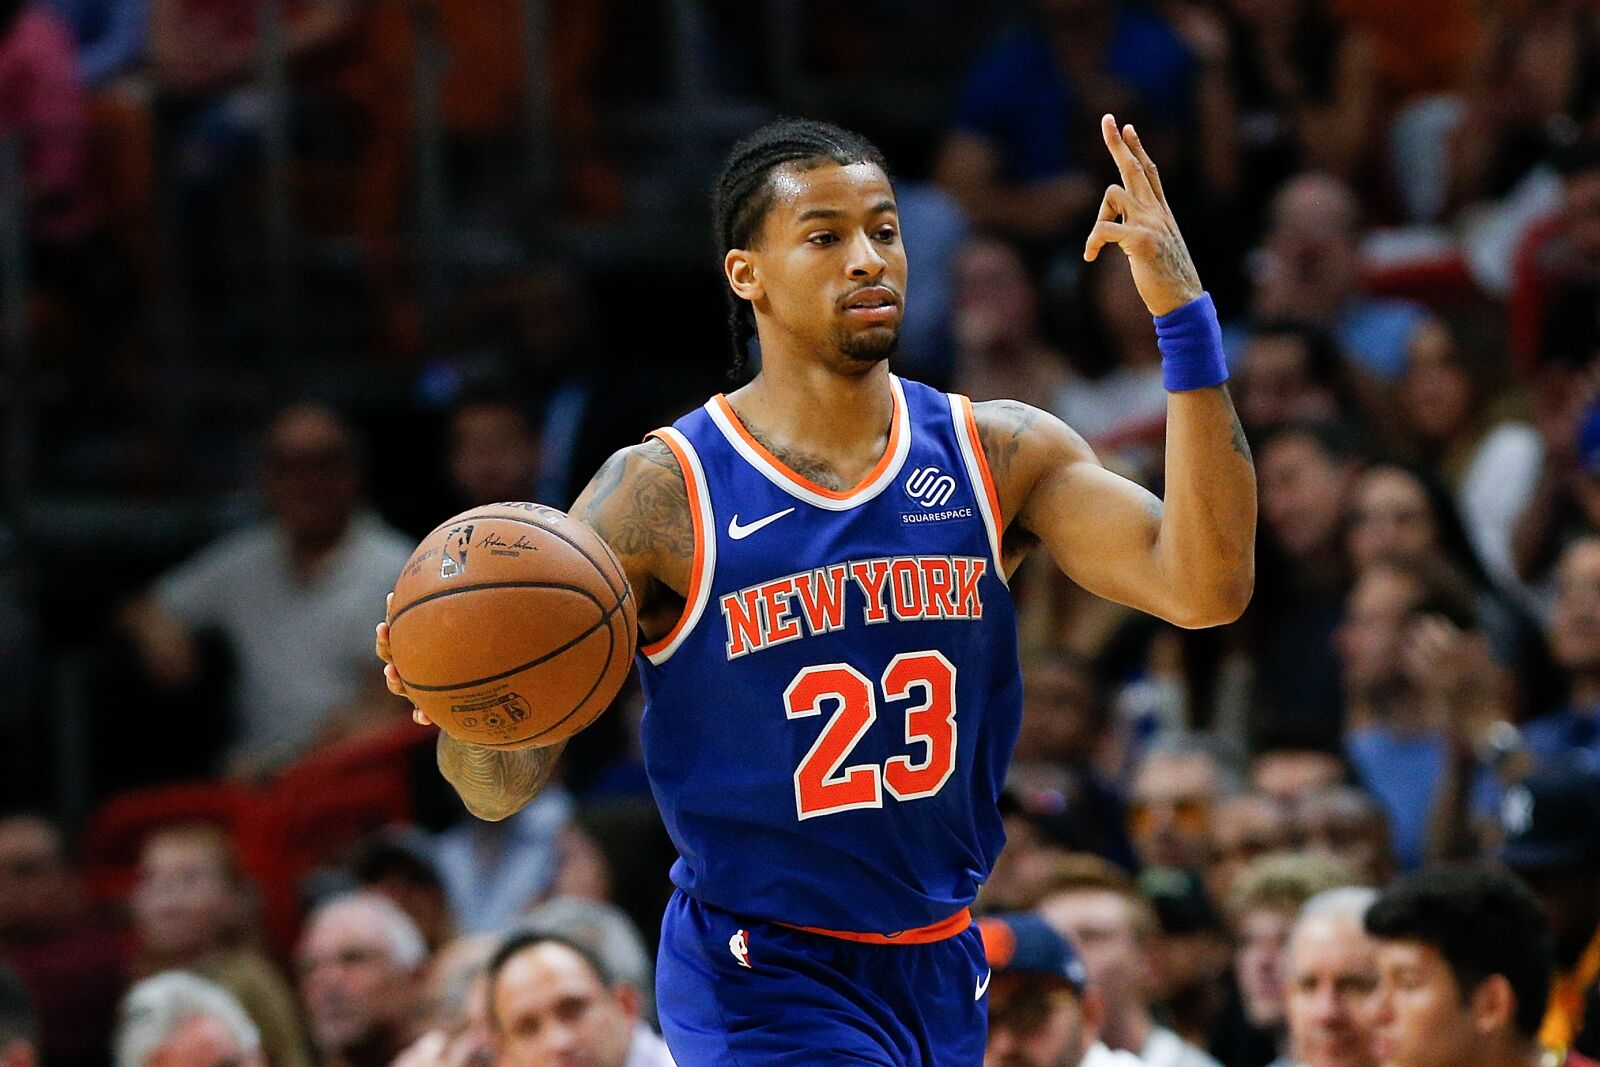 Philadelphia 76ers: The backup point guard situation needs improvement